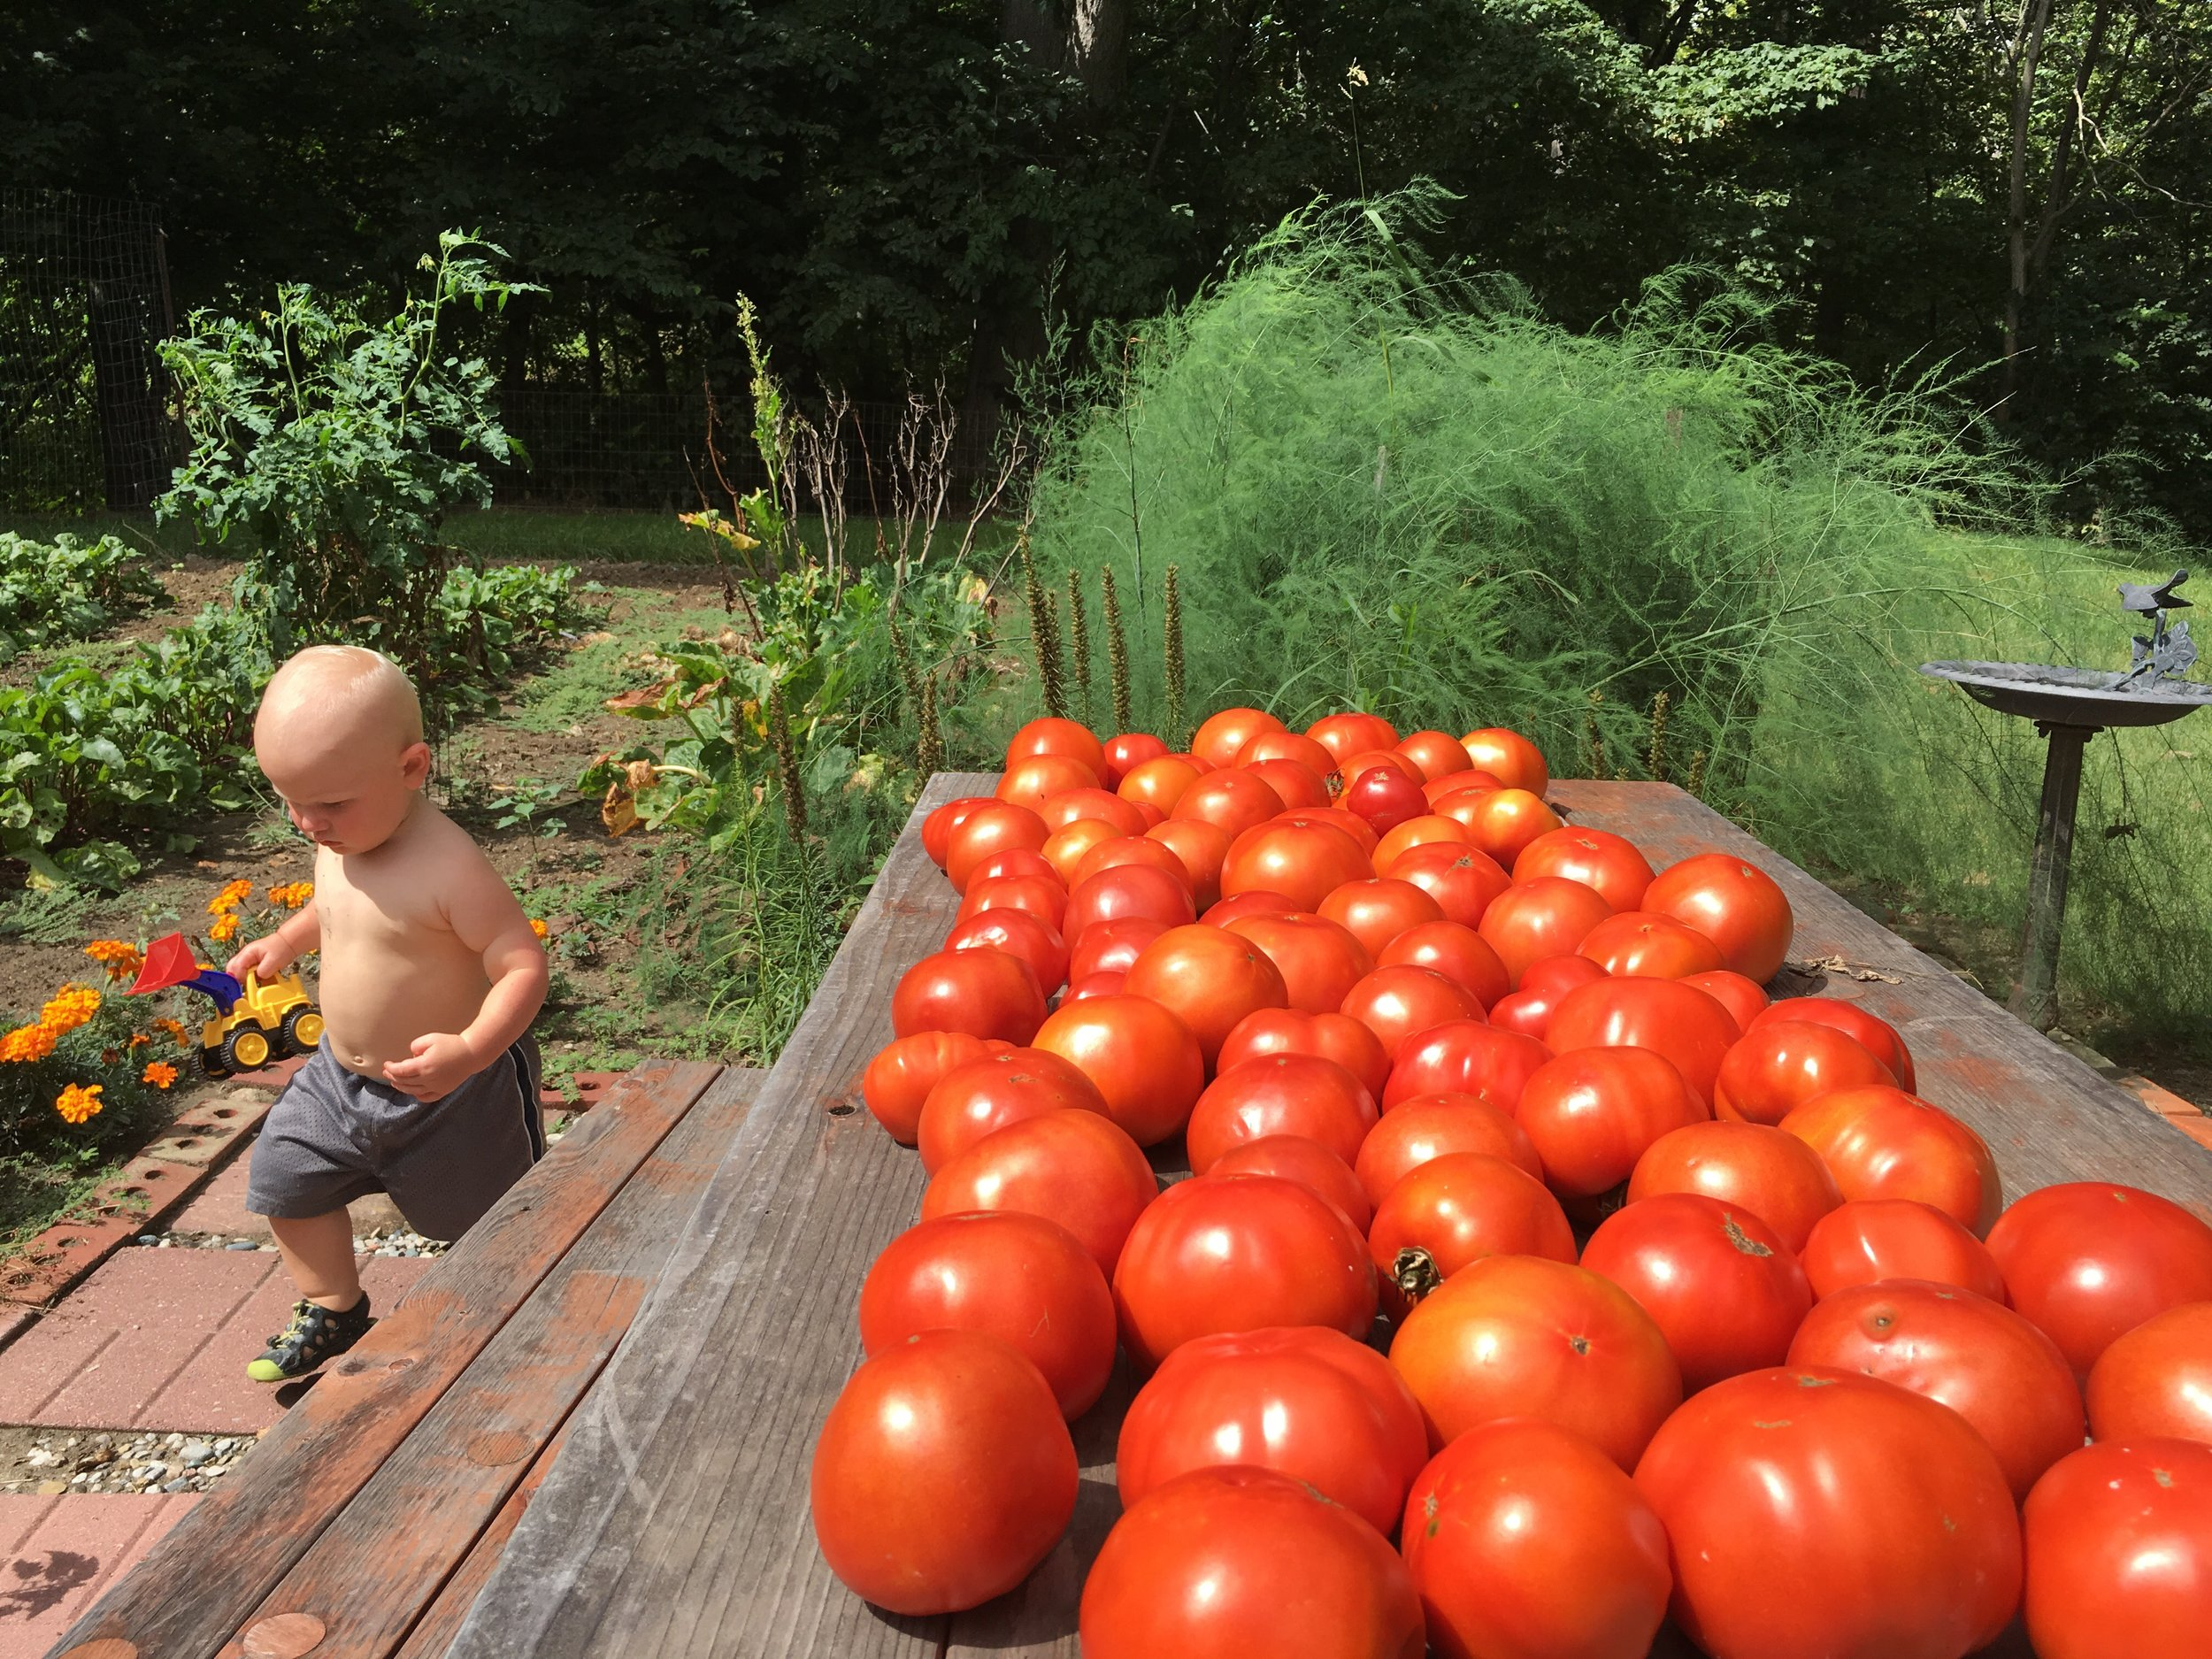 How miraculous and wonderful to experience a mid-summer bounty! *this is not my garden. I can't take credit for those plump, juicy tow-maters